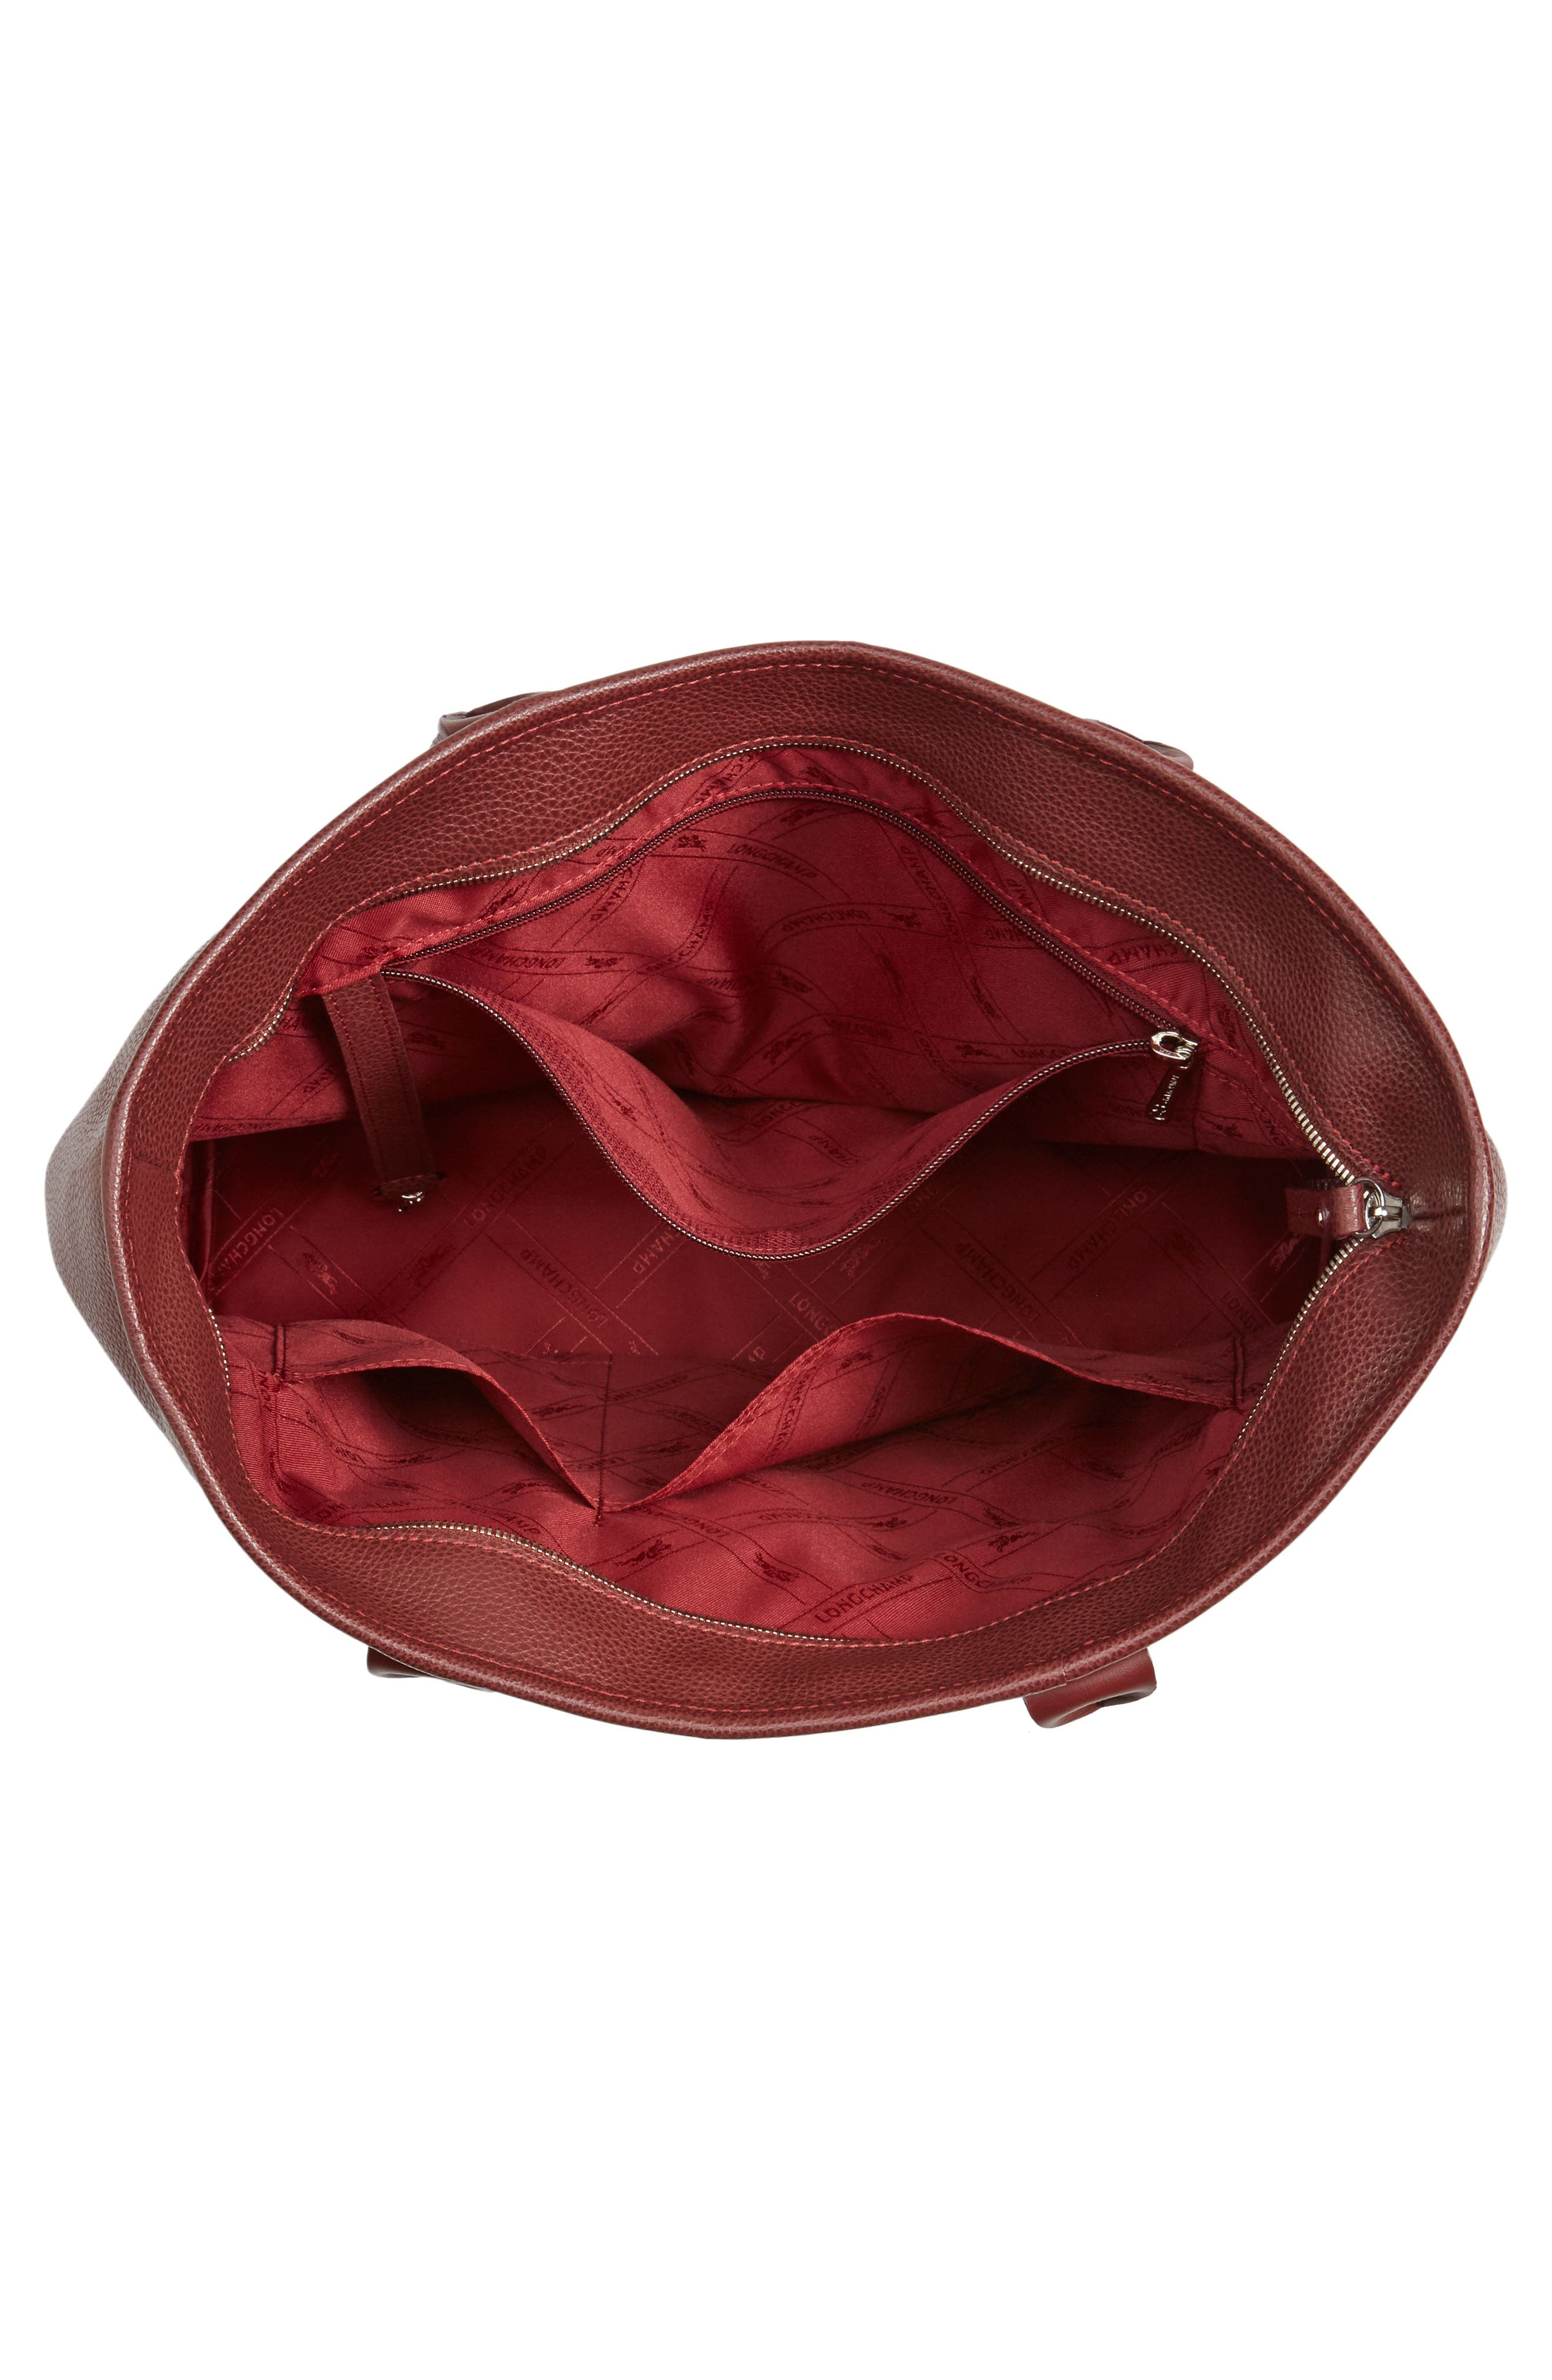 'Veau' Leather Tote,                             Alternate thumbnail 4, color,                             Red Lacquer